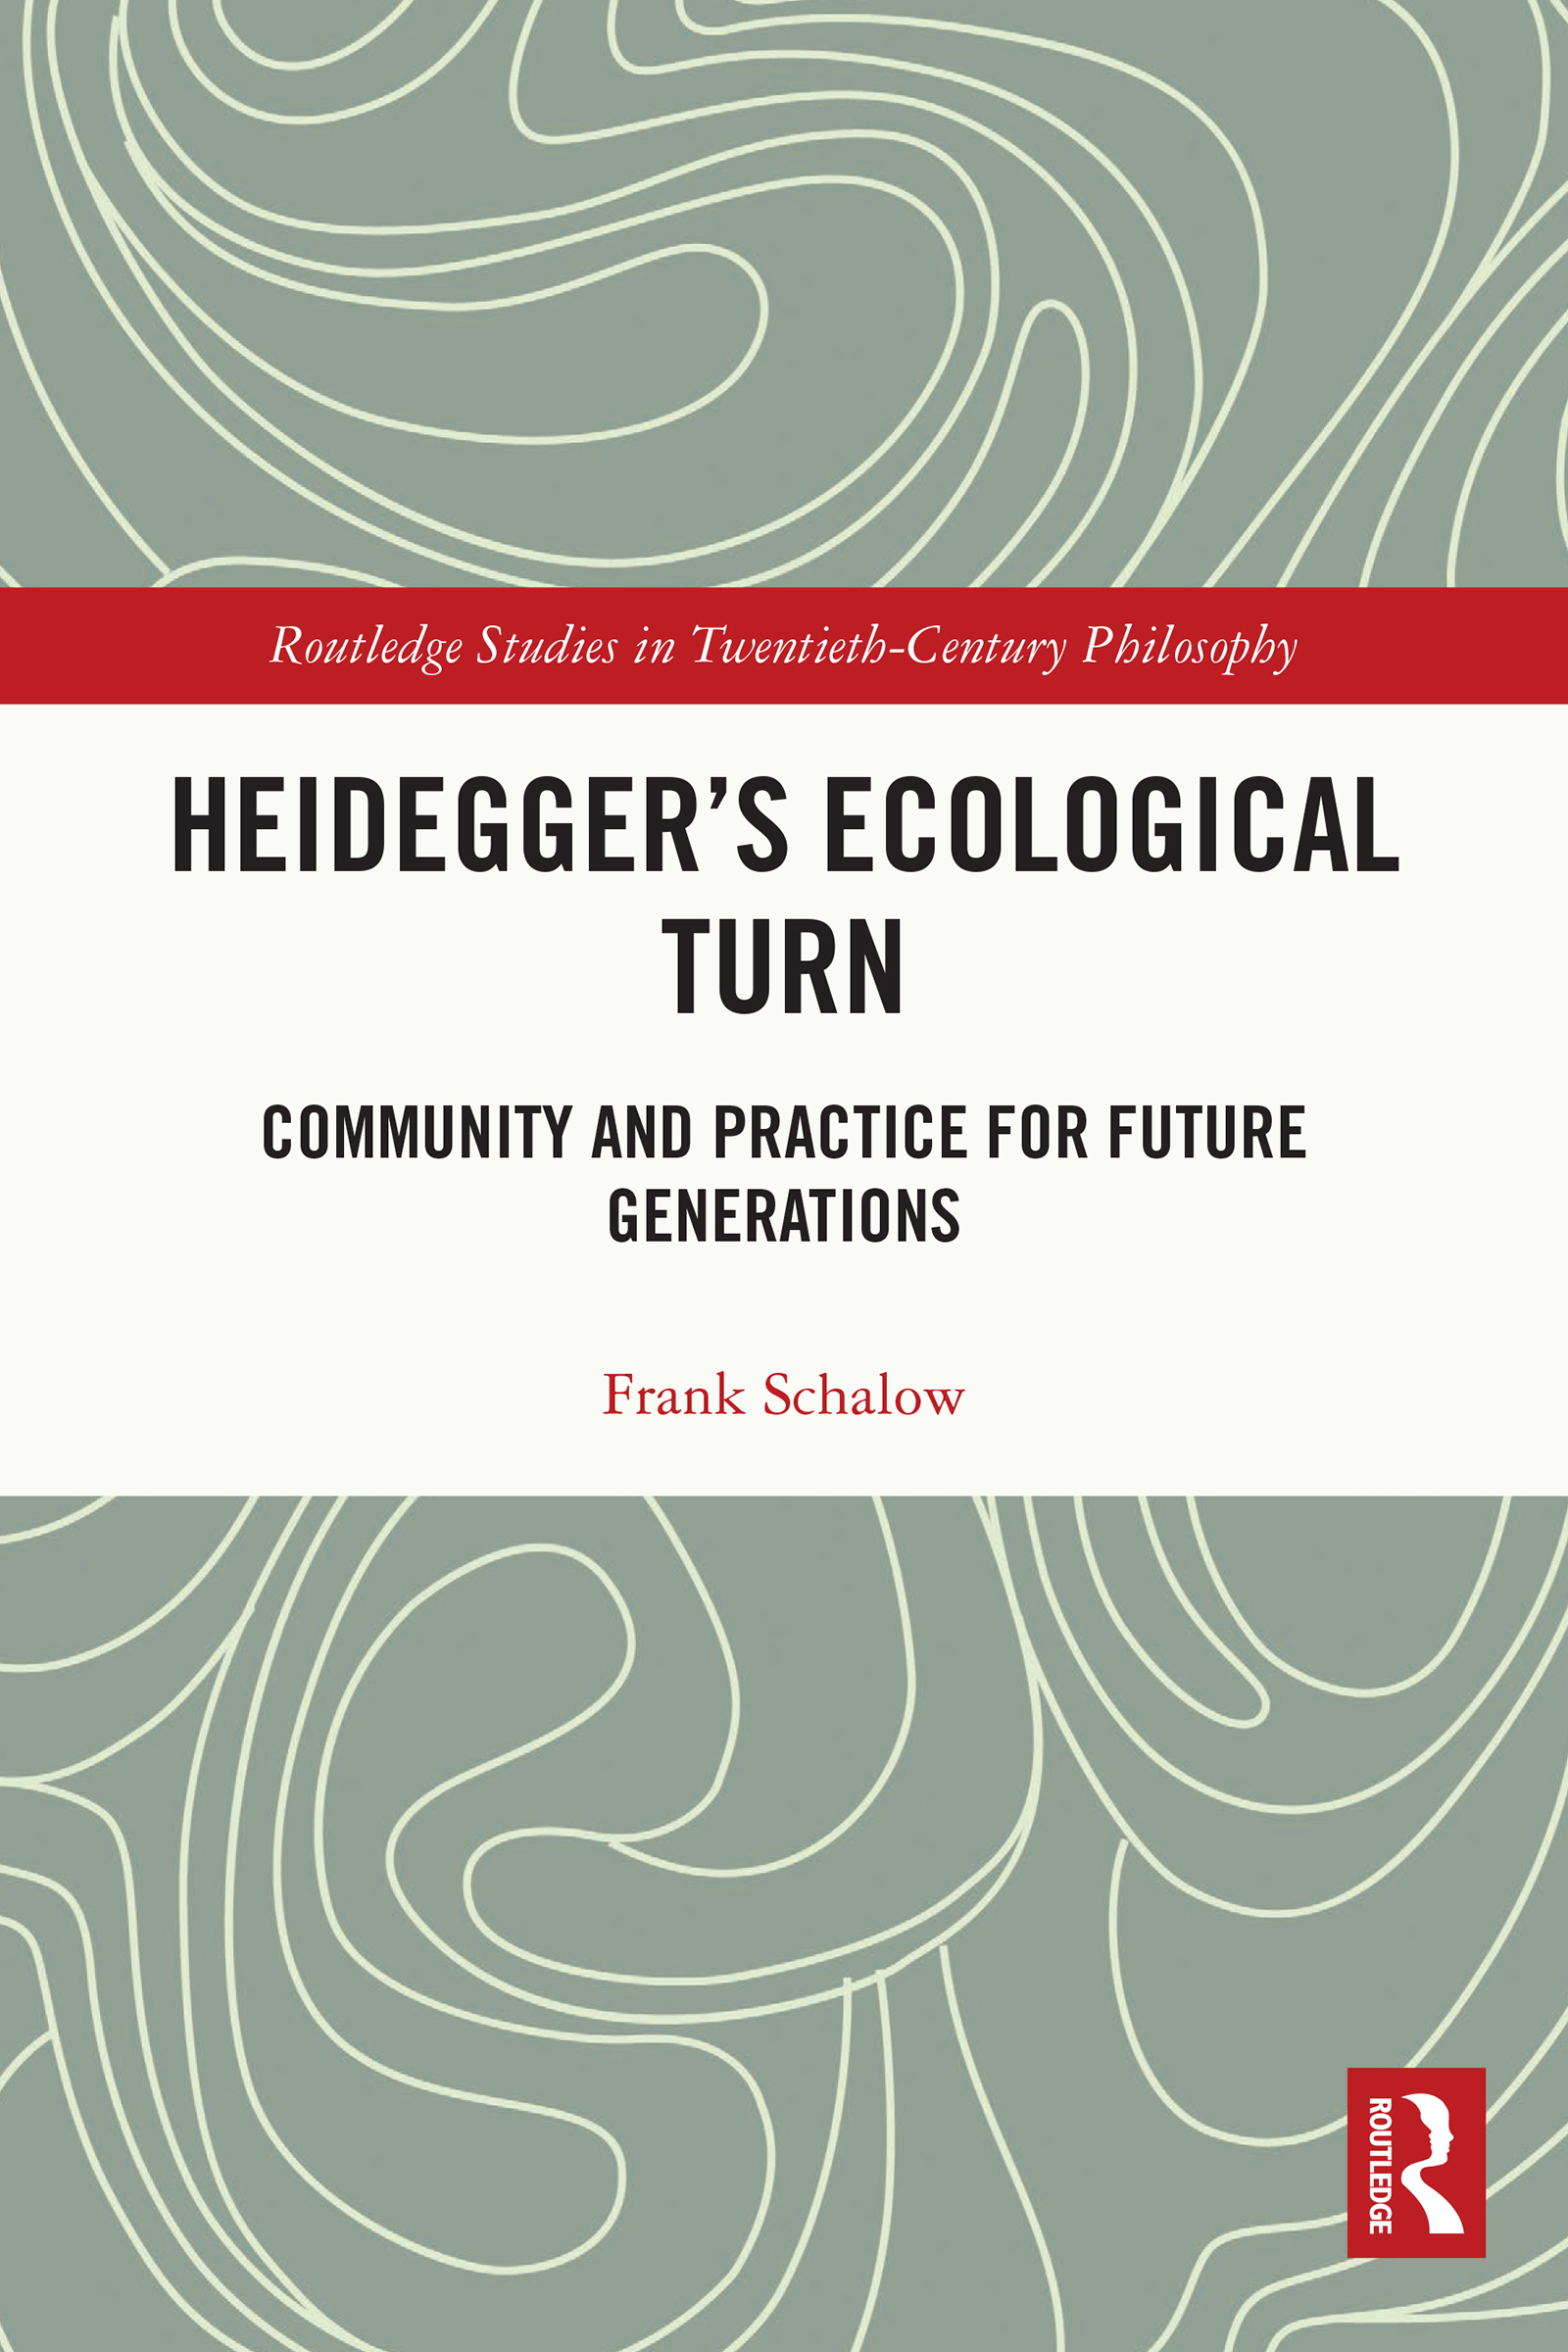 Temporality, Freedom, and Place